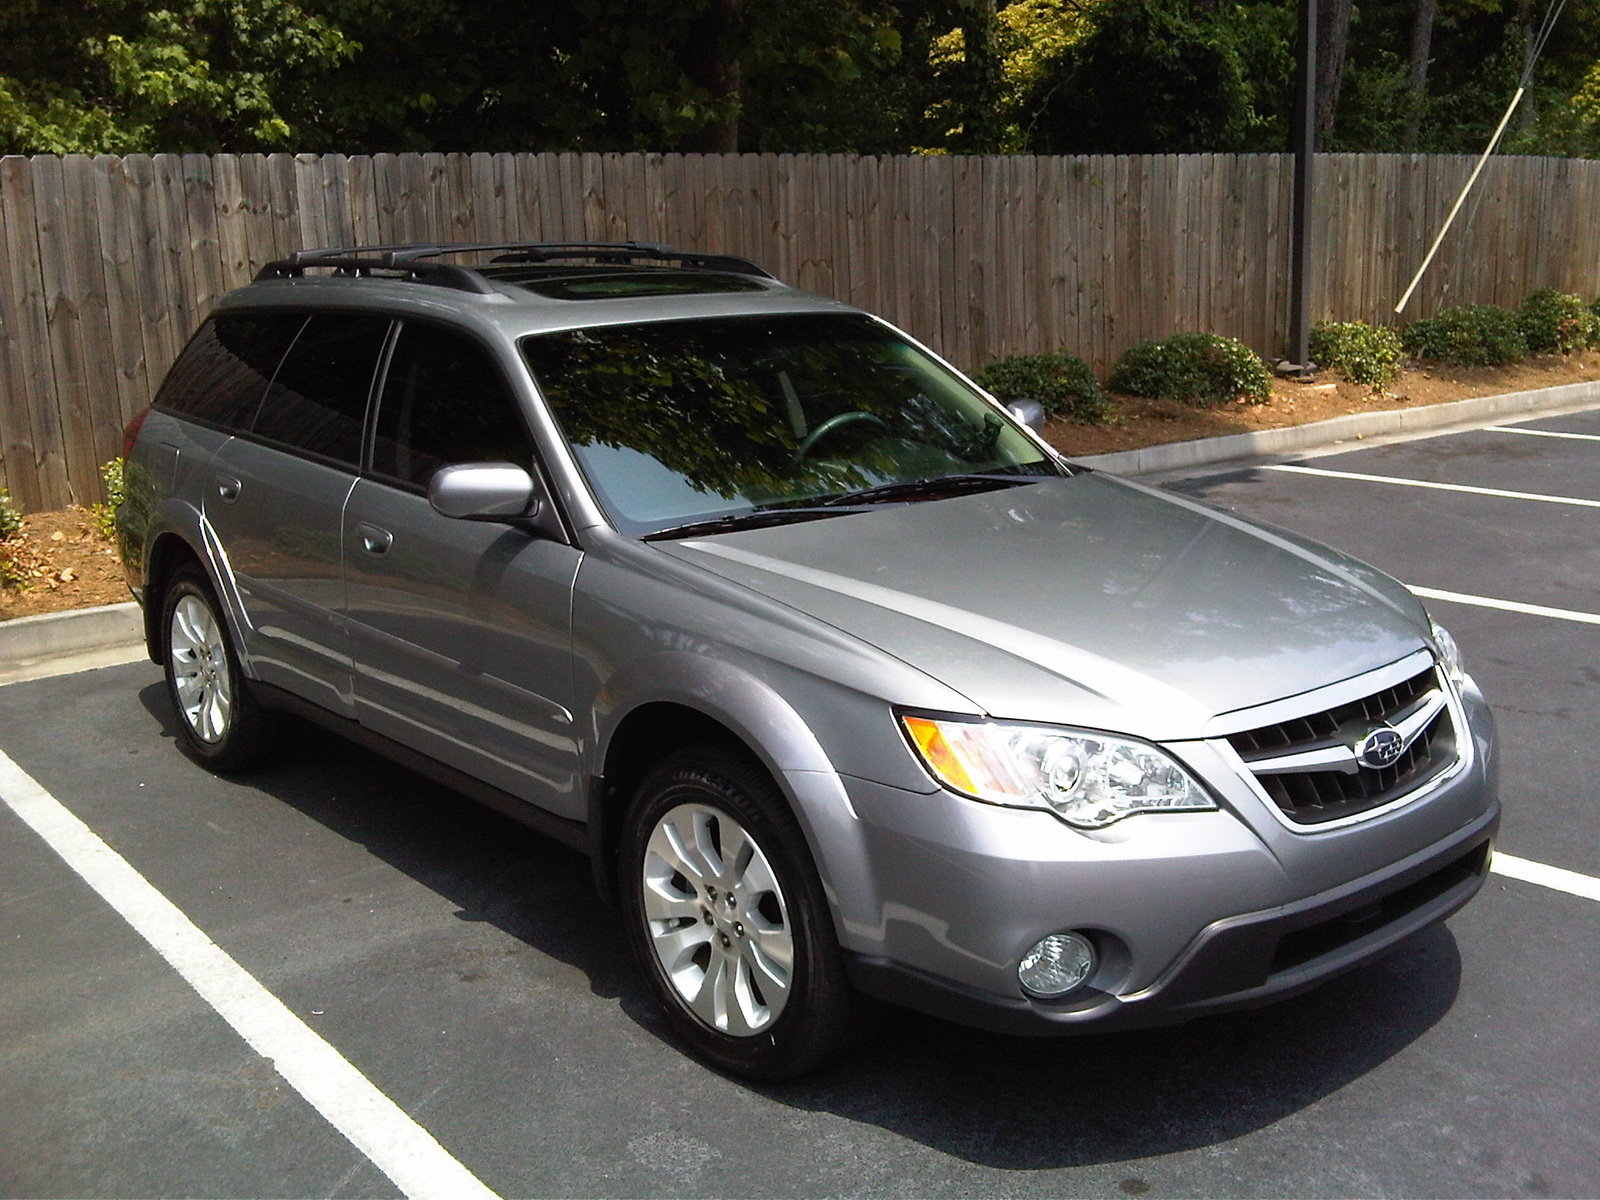 Picture of 2009 Subaru Outback 2.5i Limited